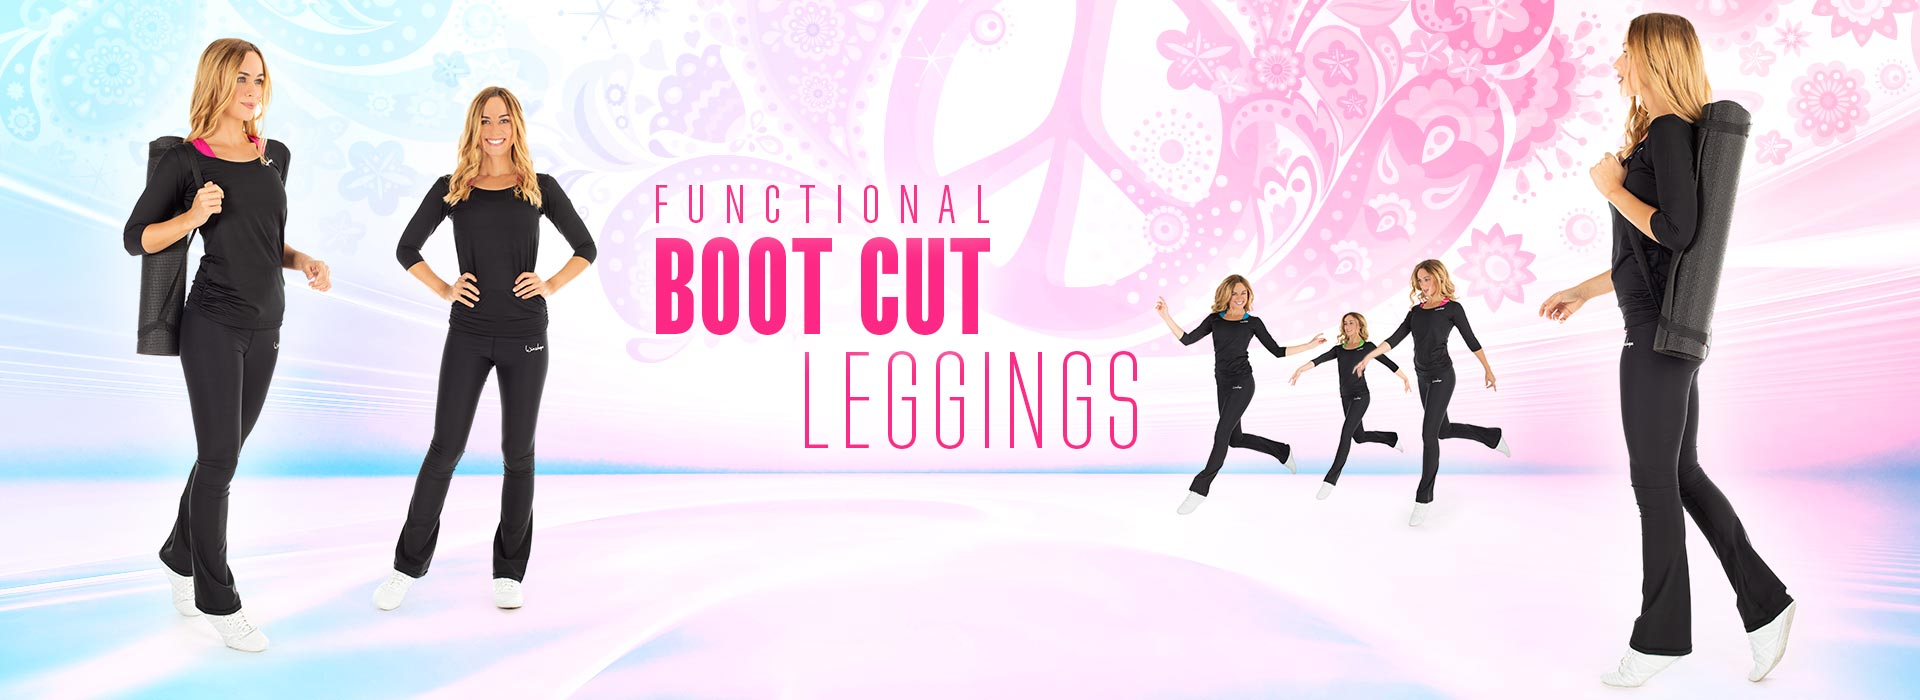 Functional Boot Cut Leggings!